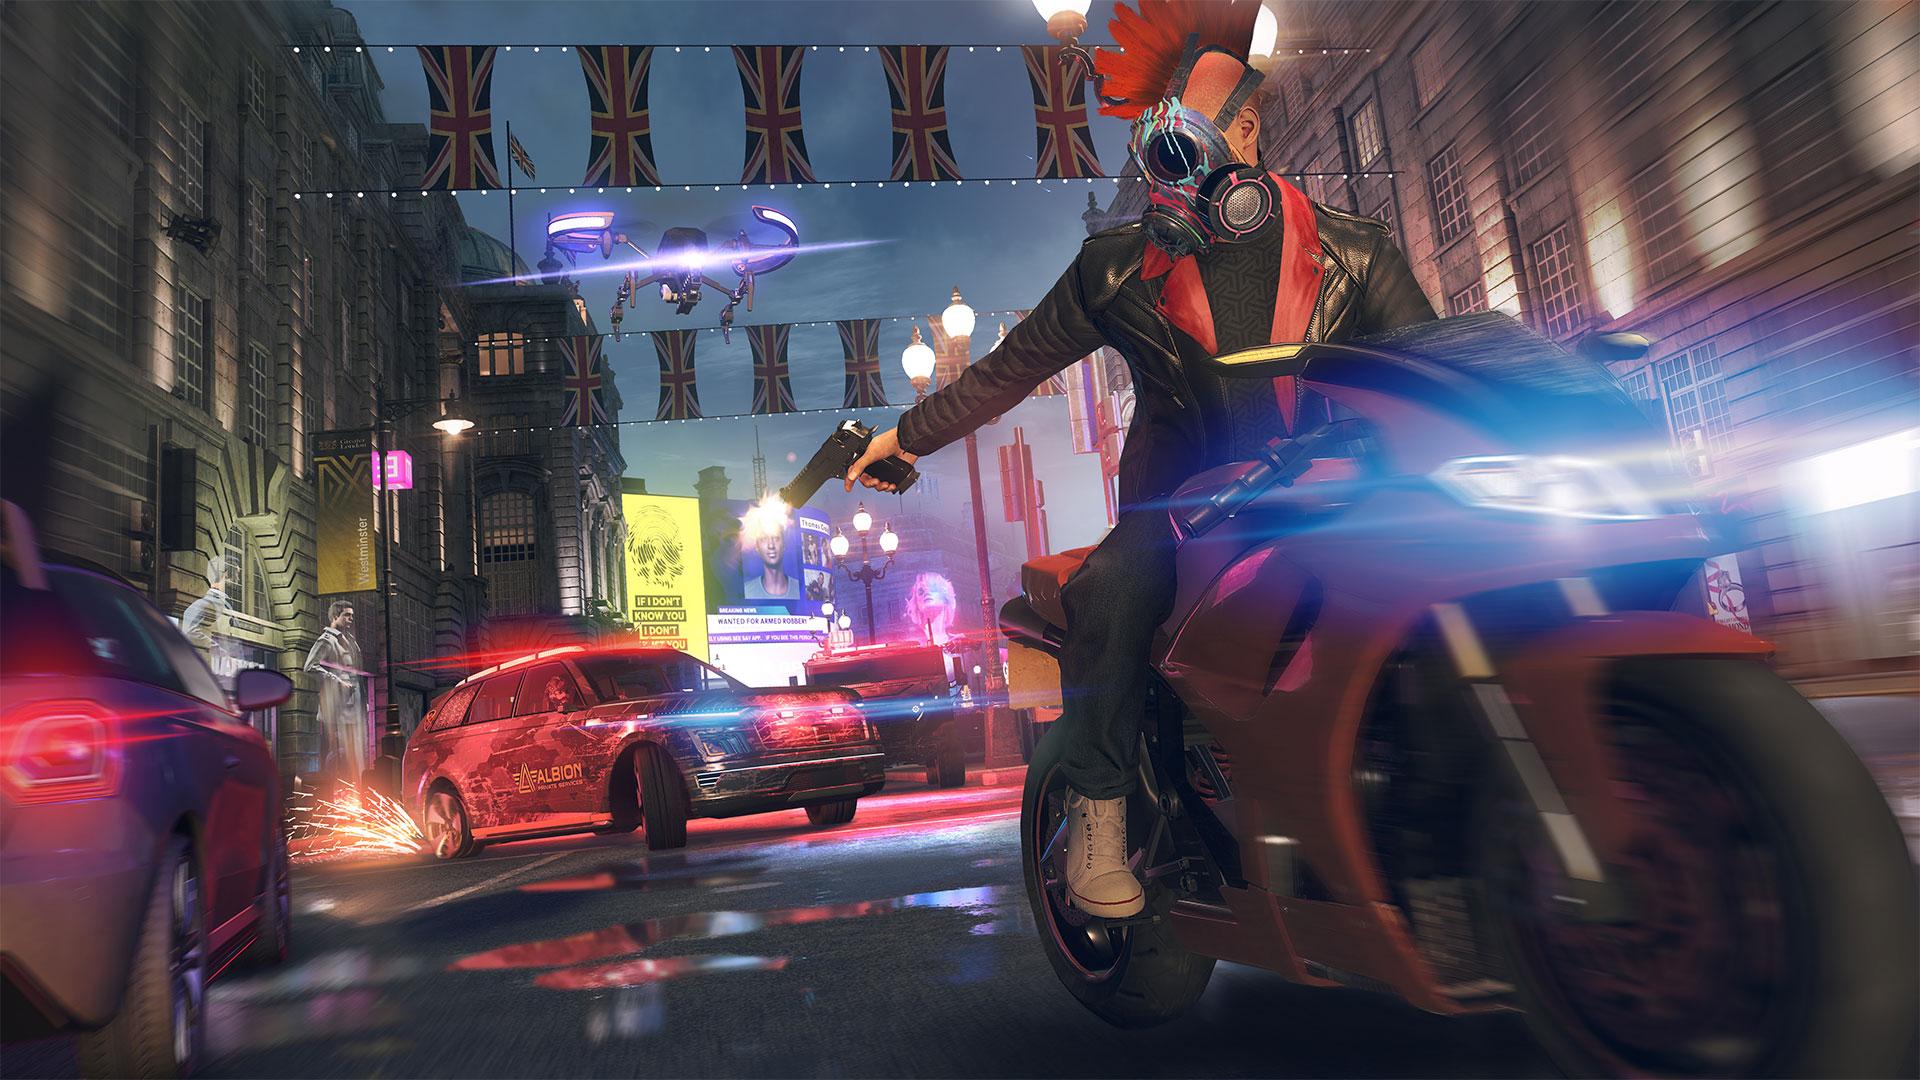 Watch Dogs Legion release date, news, gameplay details and more